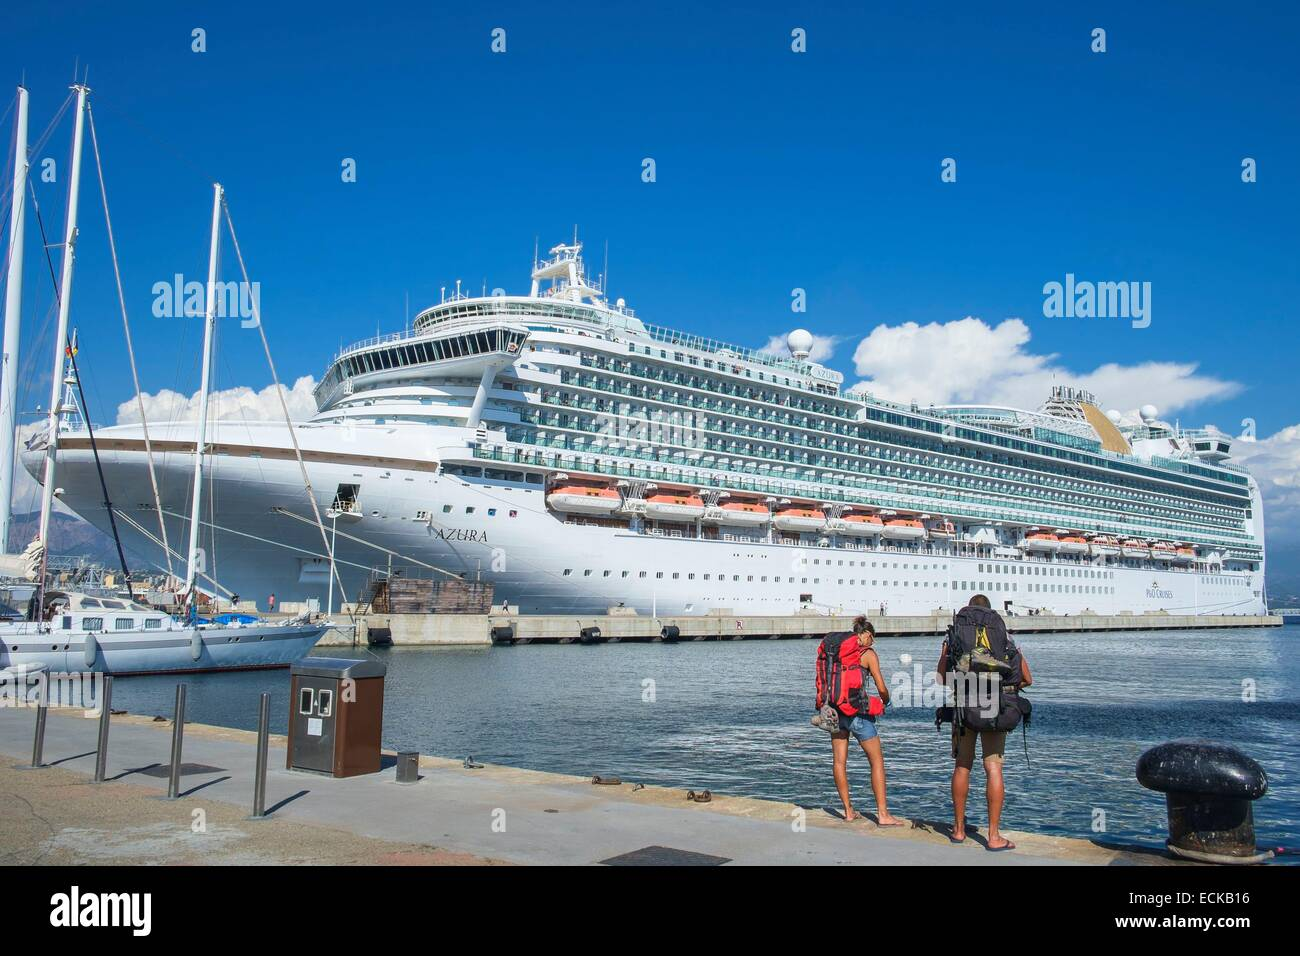 France, Corse-du-Sud, Ajaccio, Azura cruise boat is one of the largest of the company P&O Cruises - Stock Image